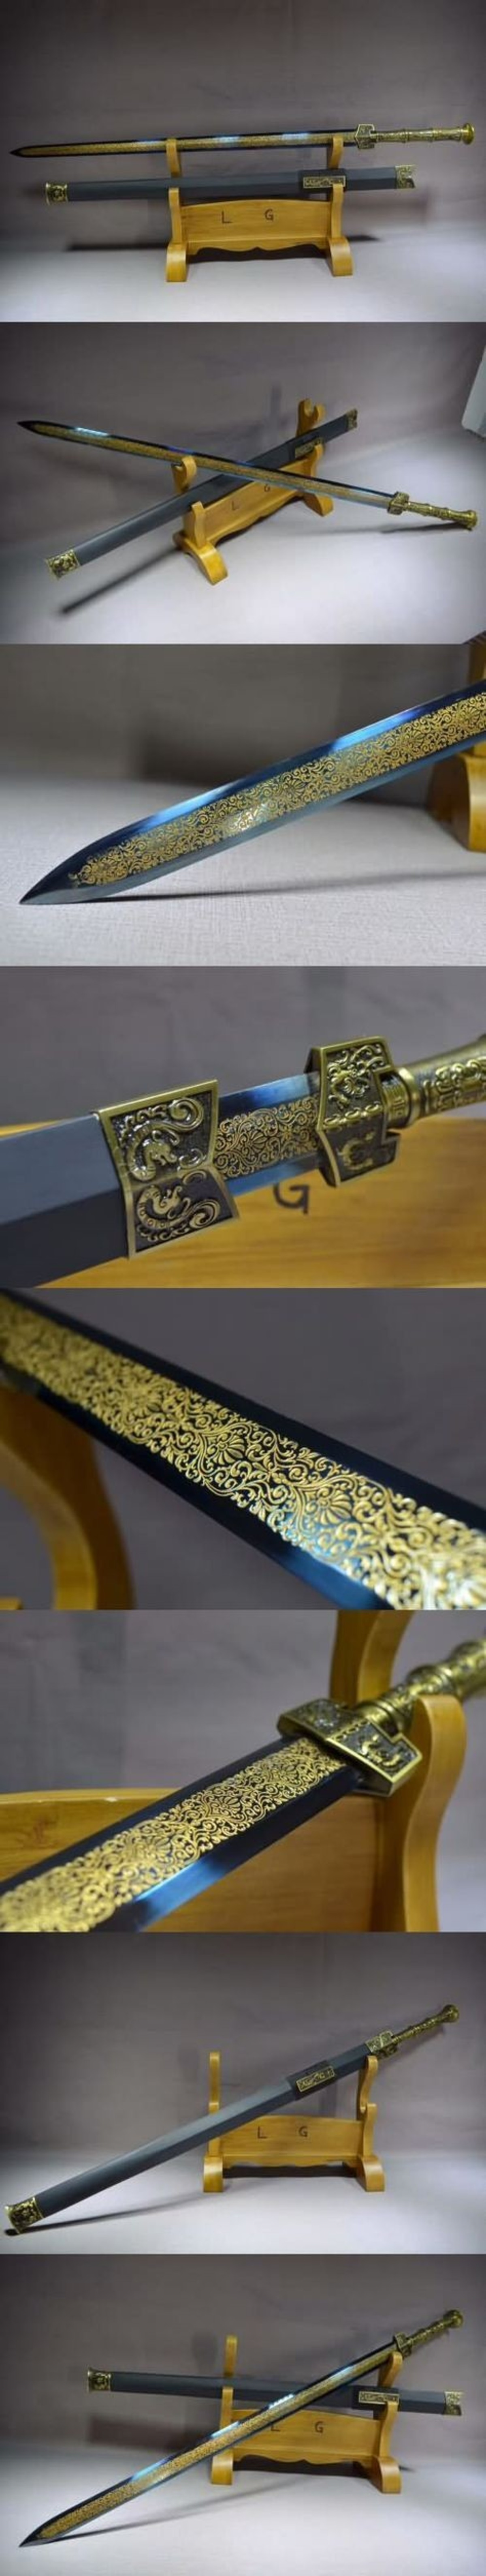 stab. join list: StabbingTime (527 subs)Mention History.. I want this sword. I want to keep it.